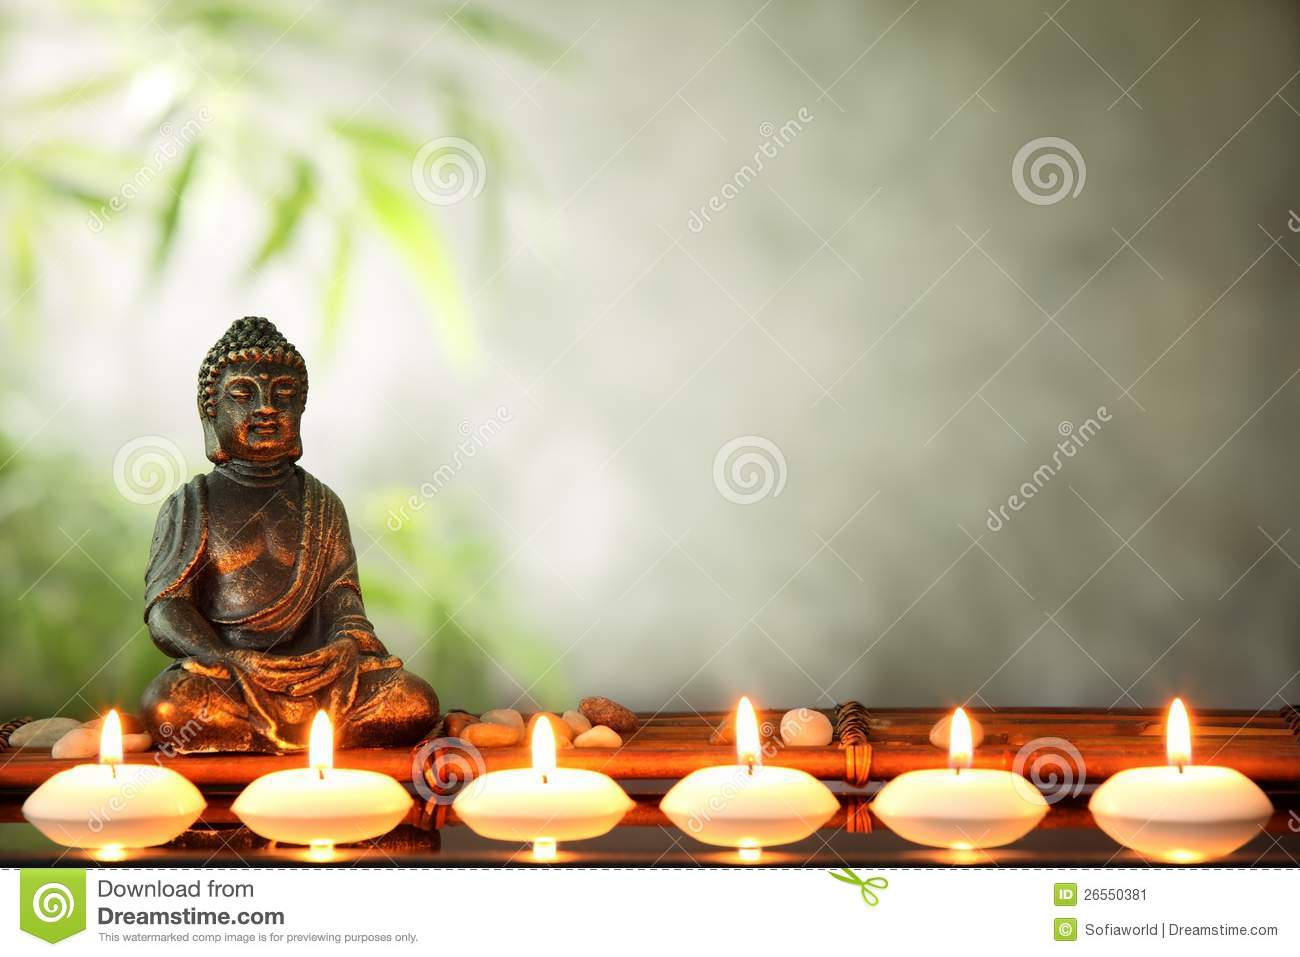 buddha and candles stock image image 26550381. Black Bedroom Furniture Sets. Home Design Ideas